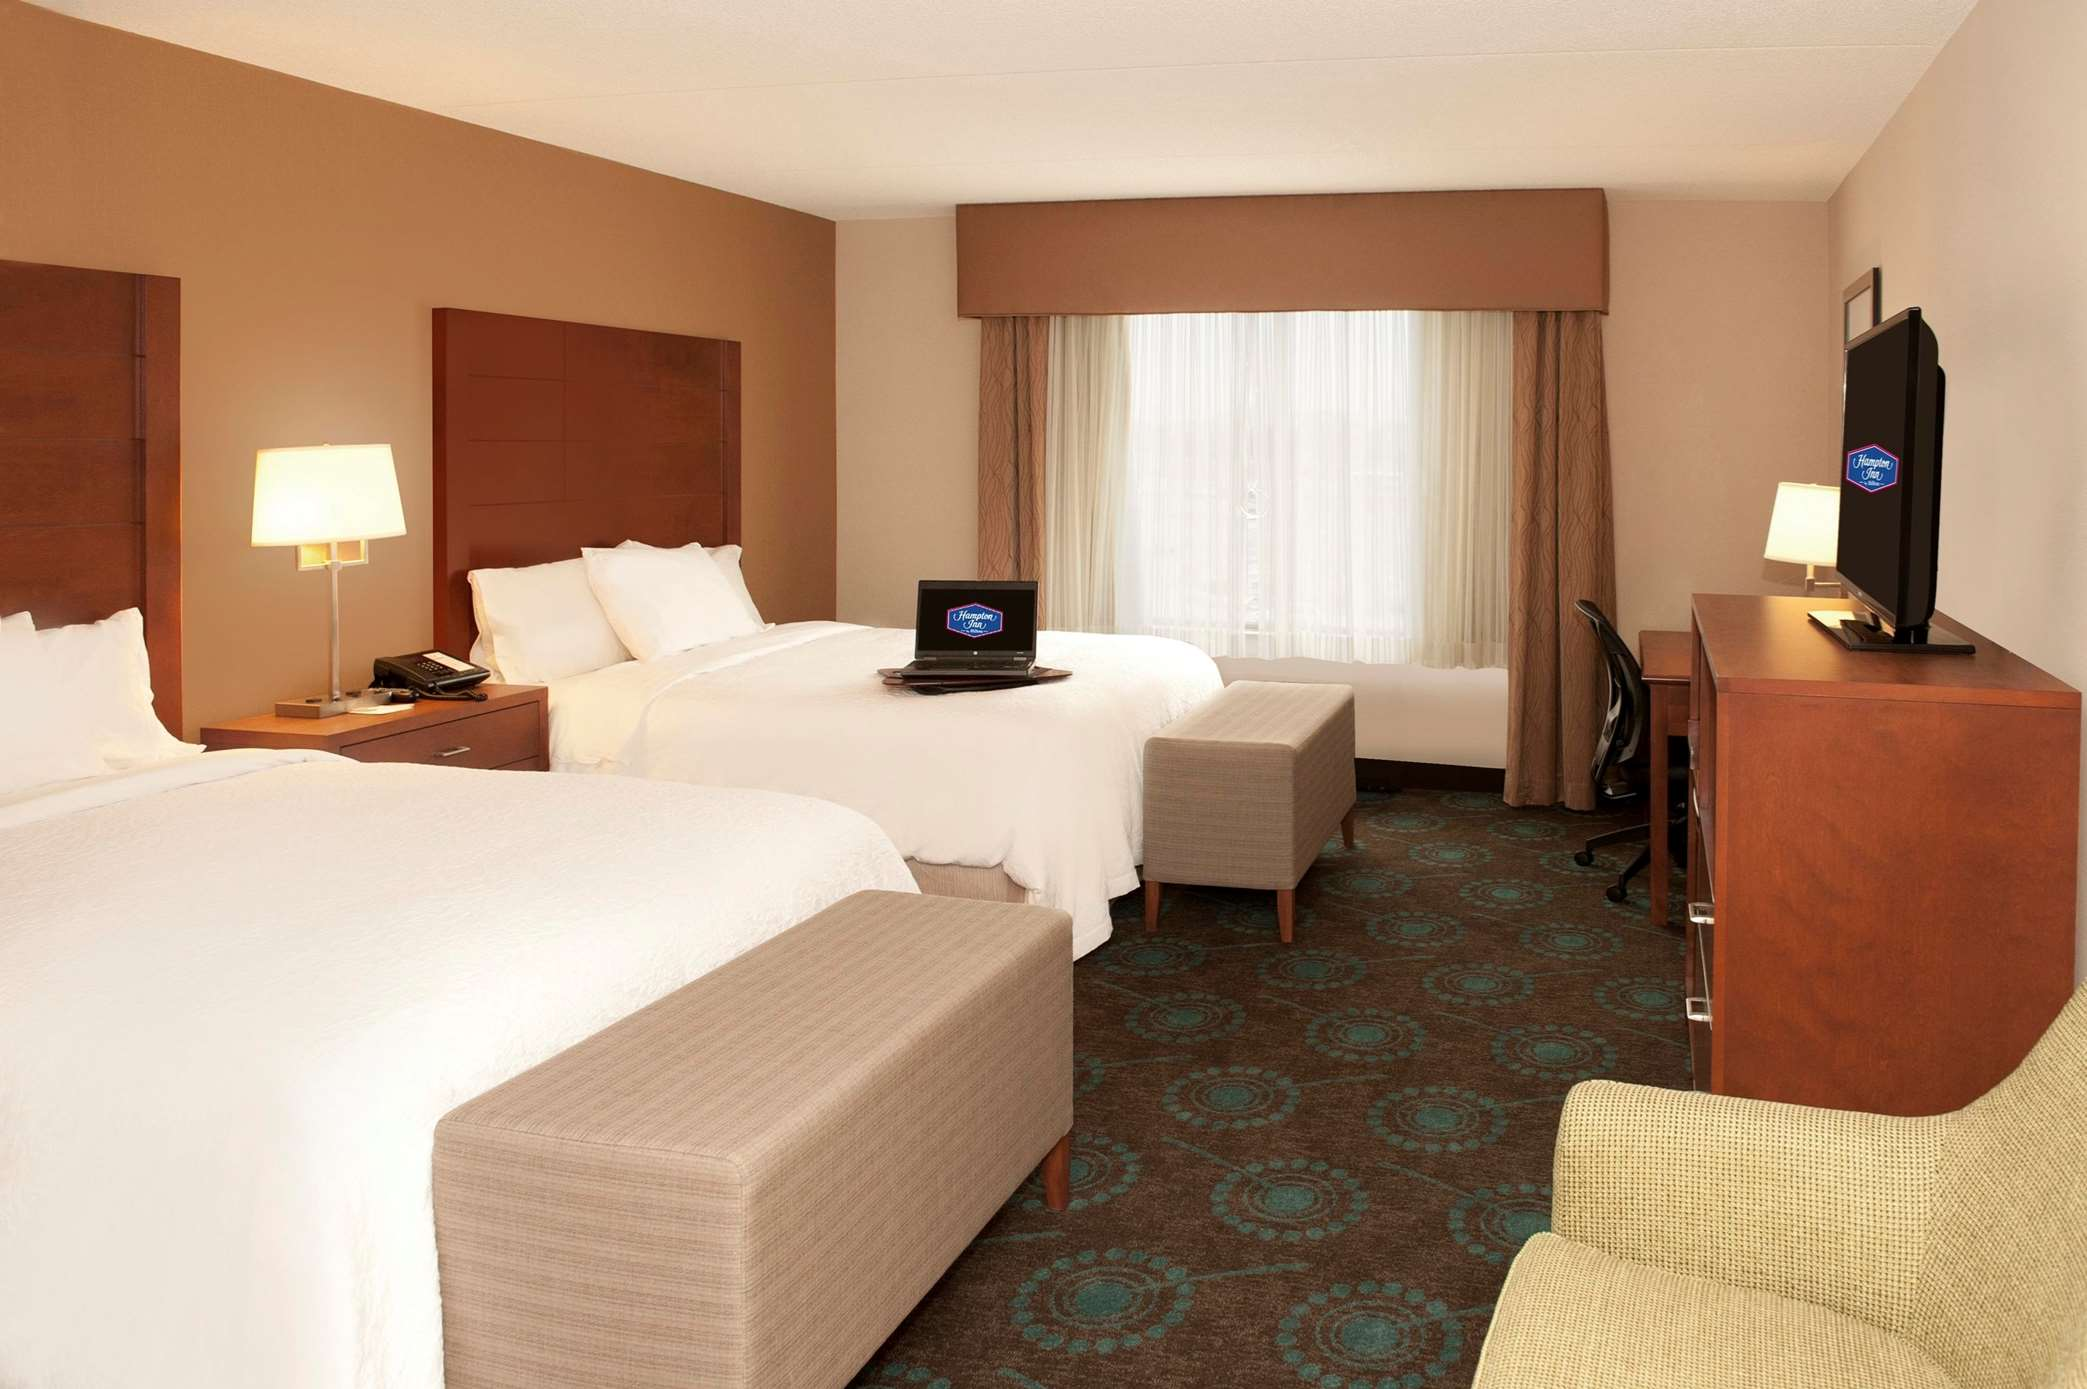 Hampton Inn by Hilton Brampton Toronto à Brampton: Standard Room with 2 Beds